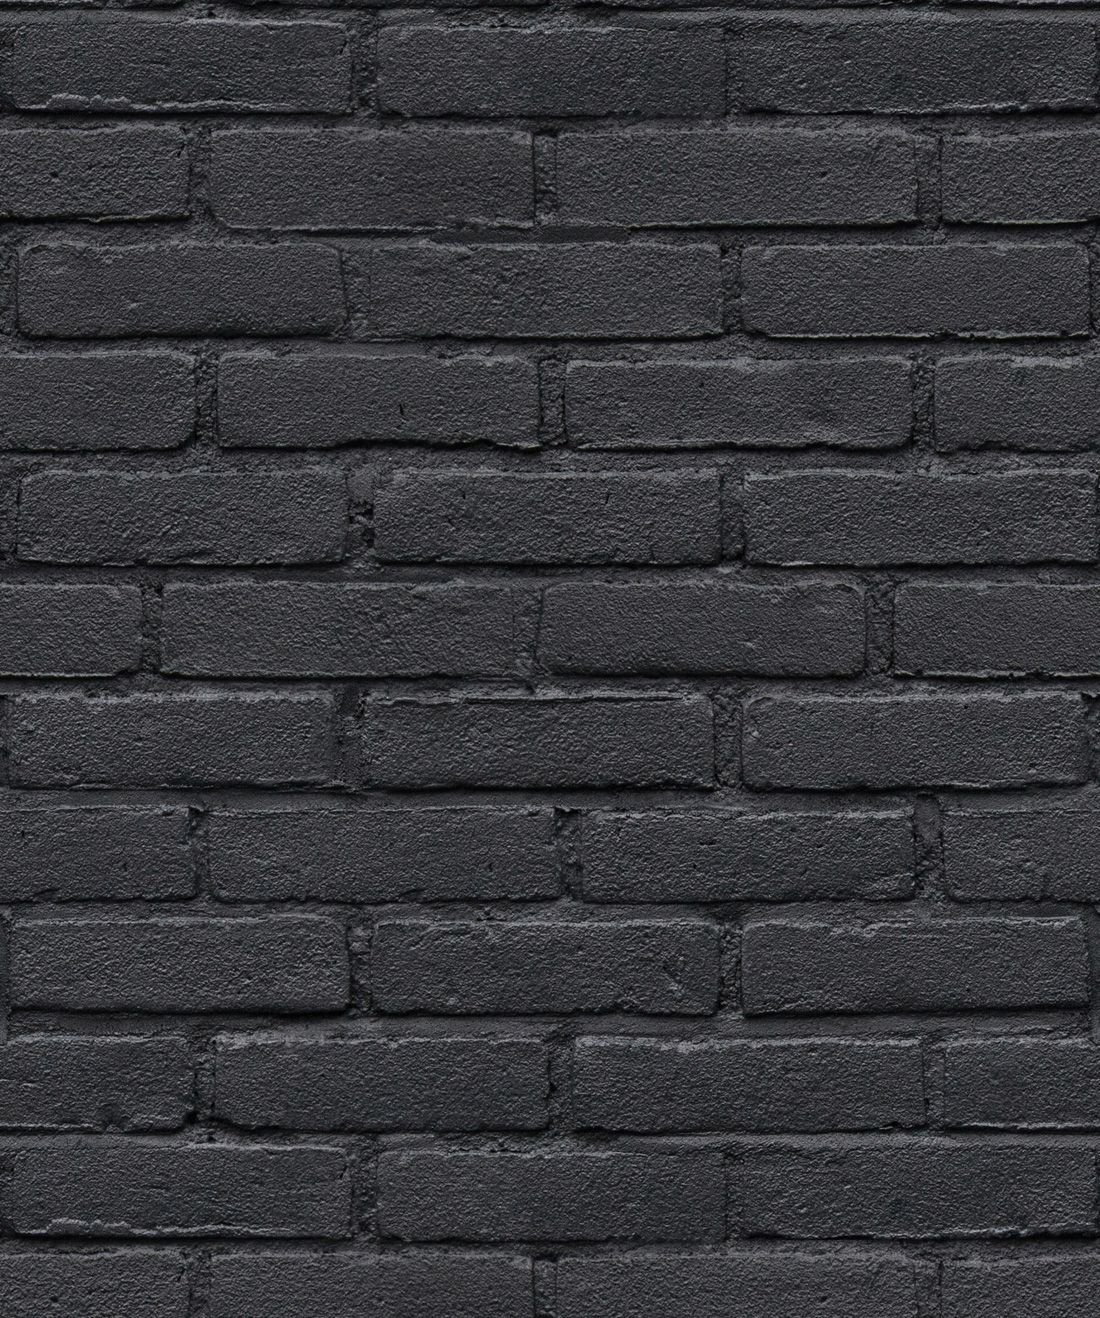 Dark Brick Wallpapers Top Free Dark Brick Backgrounds Wallpaperaccess